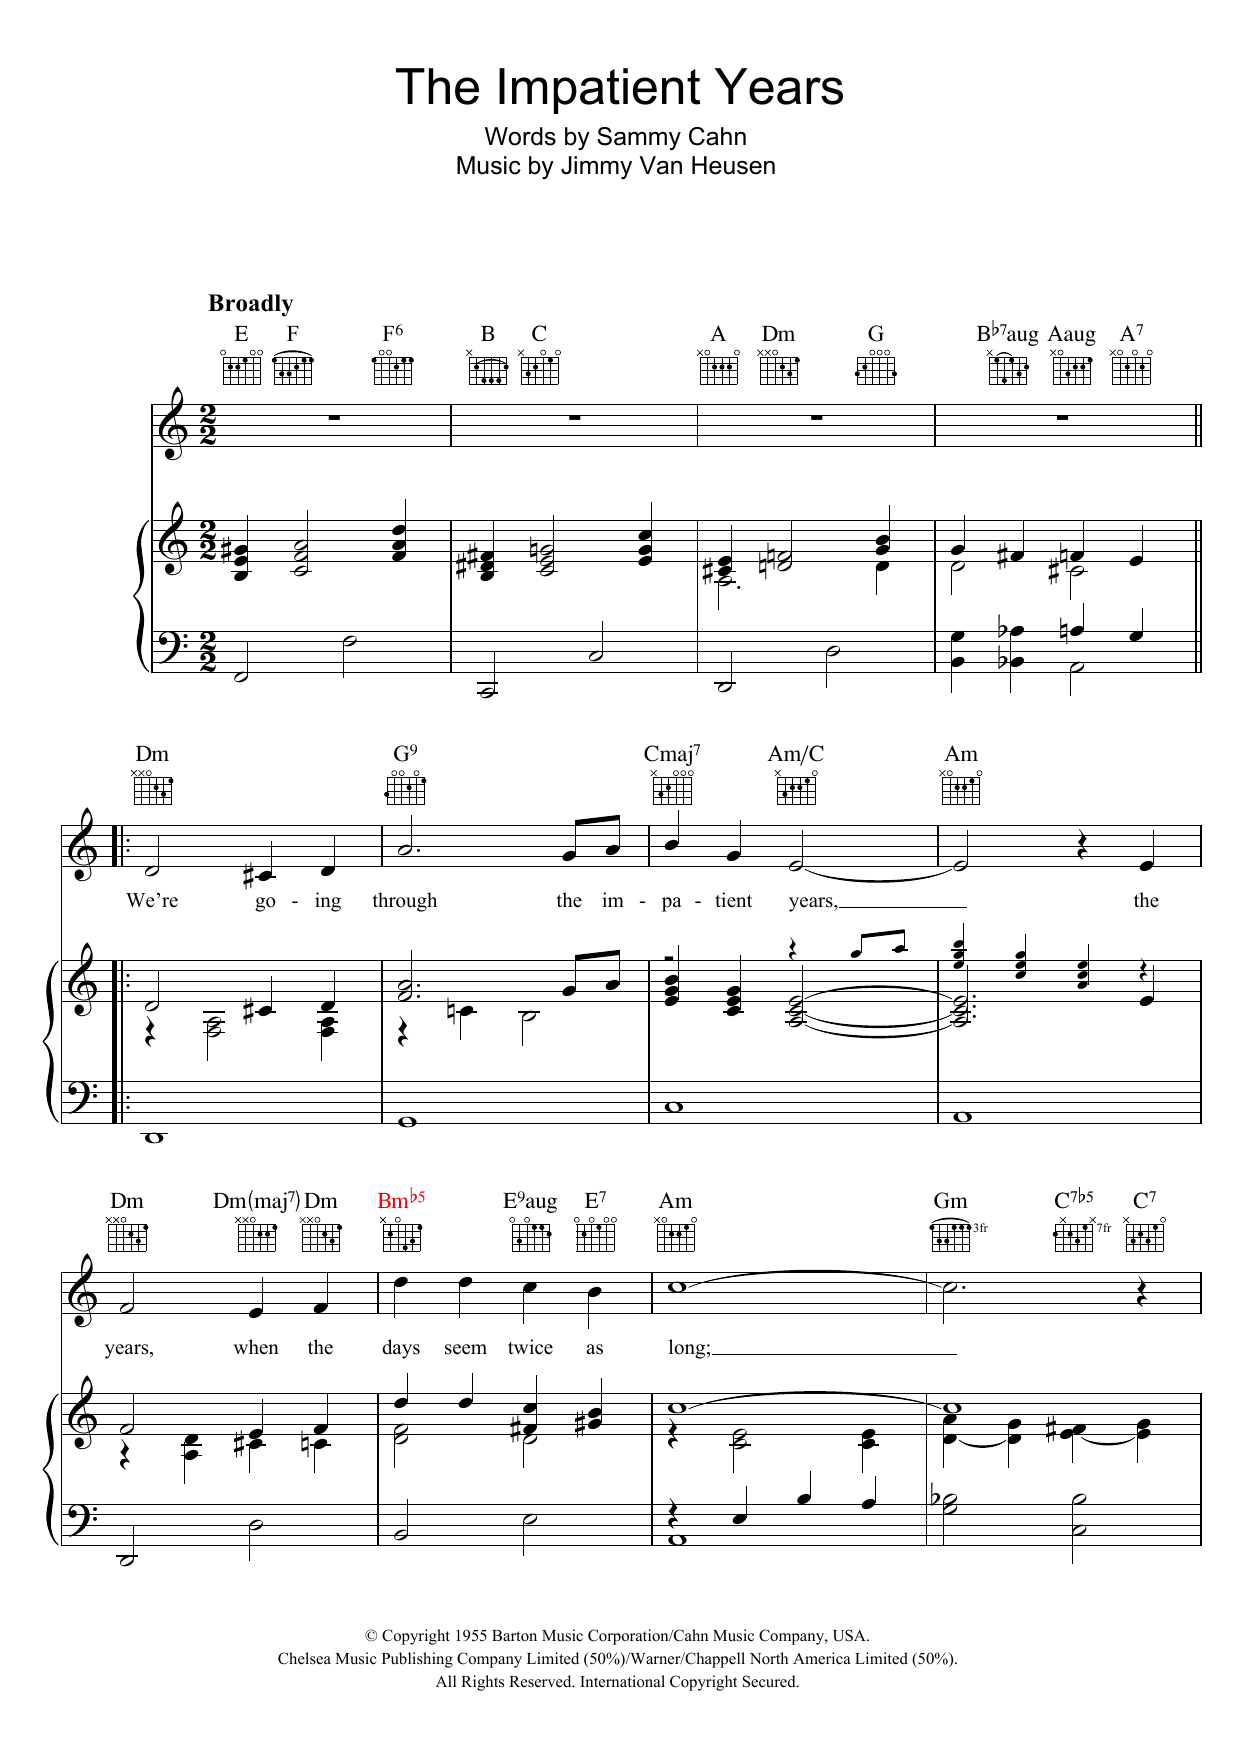 The Impatient Years Sheet Music